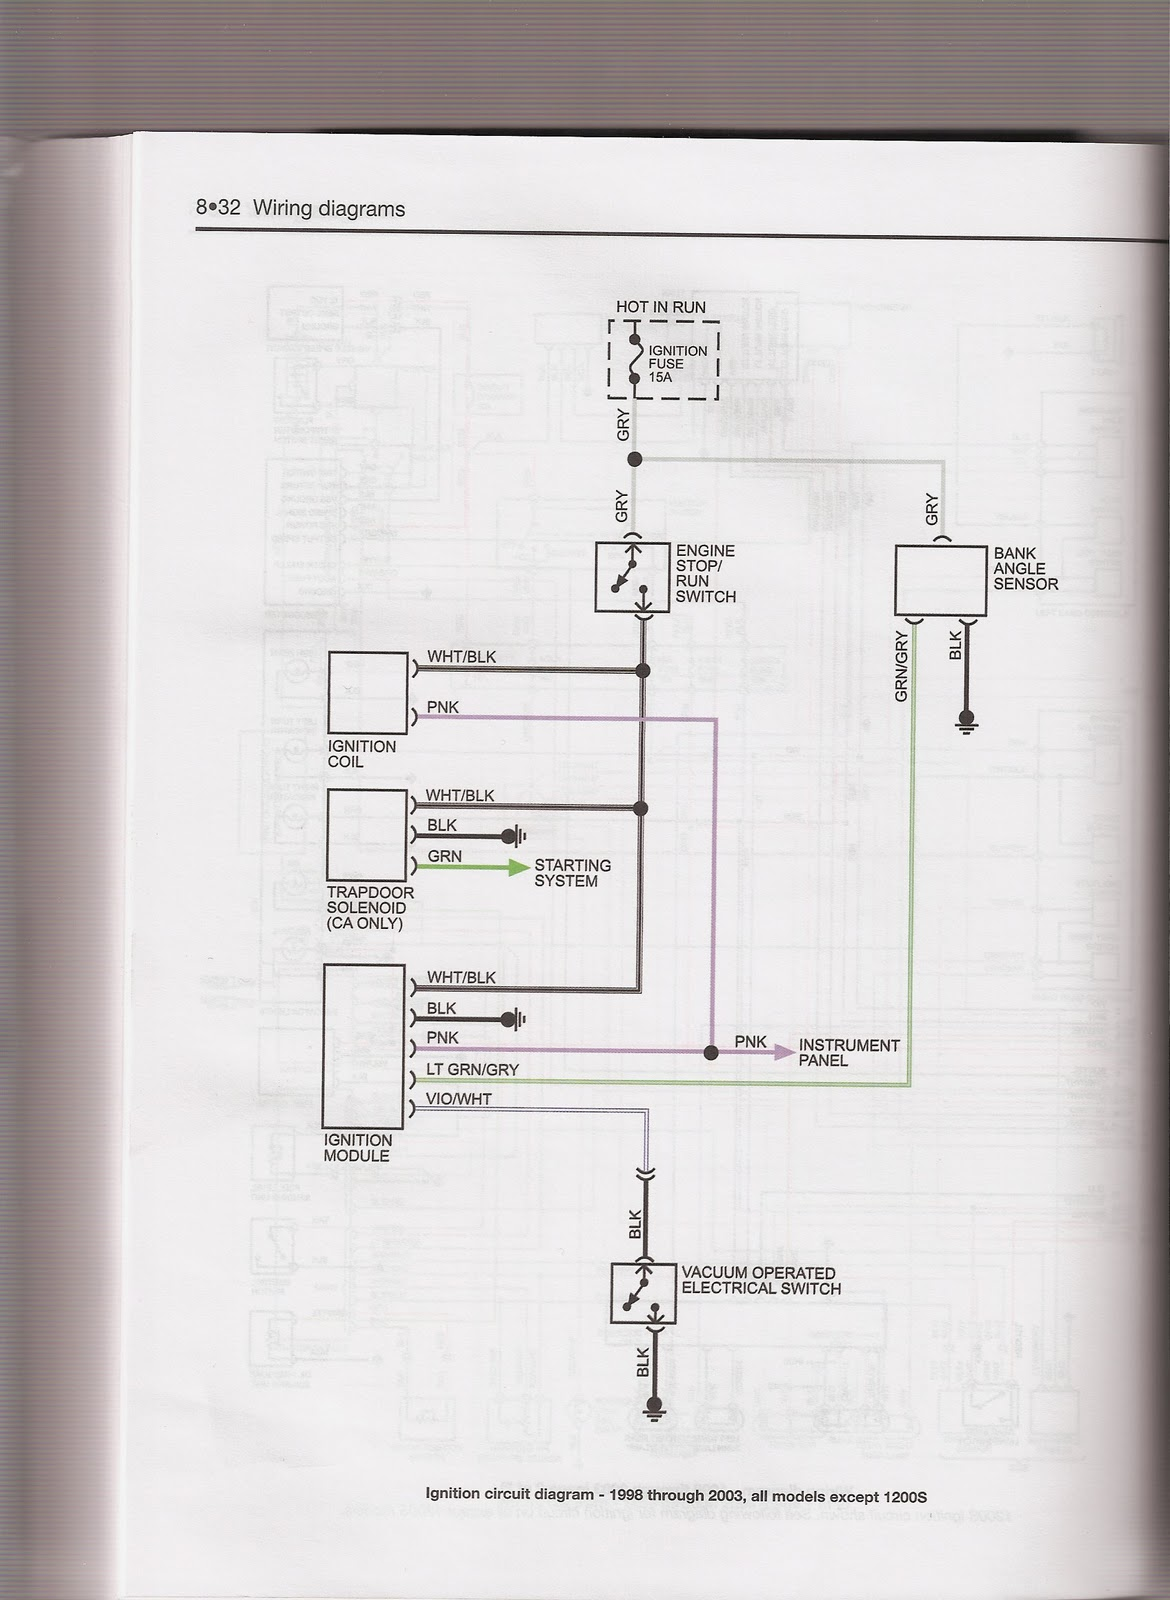 SCAN0016 kracker jacks wiring diagrams for a 98 03 sportster sportster wiring diagram at fashall.co